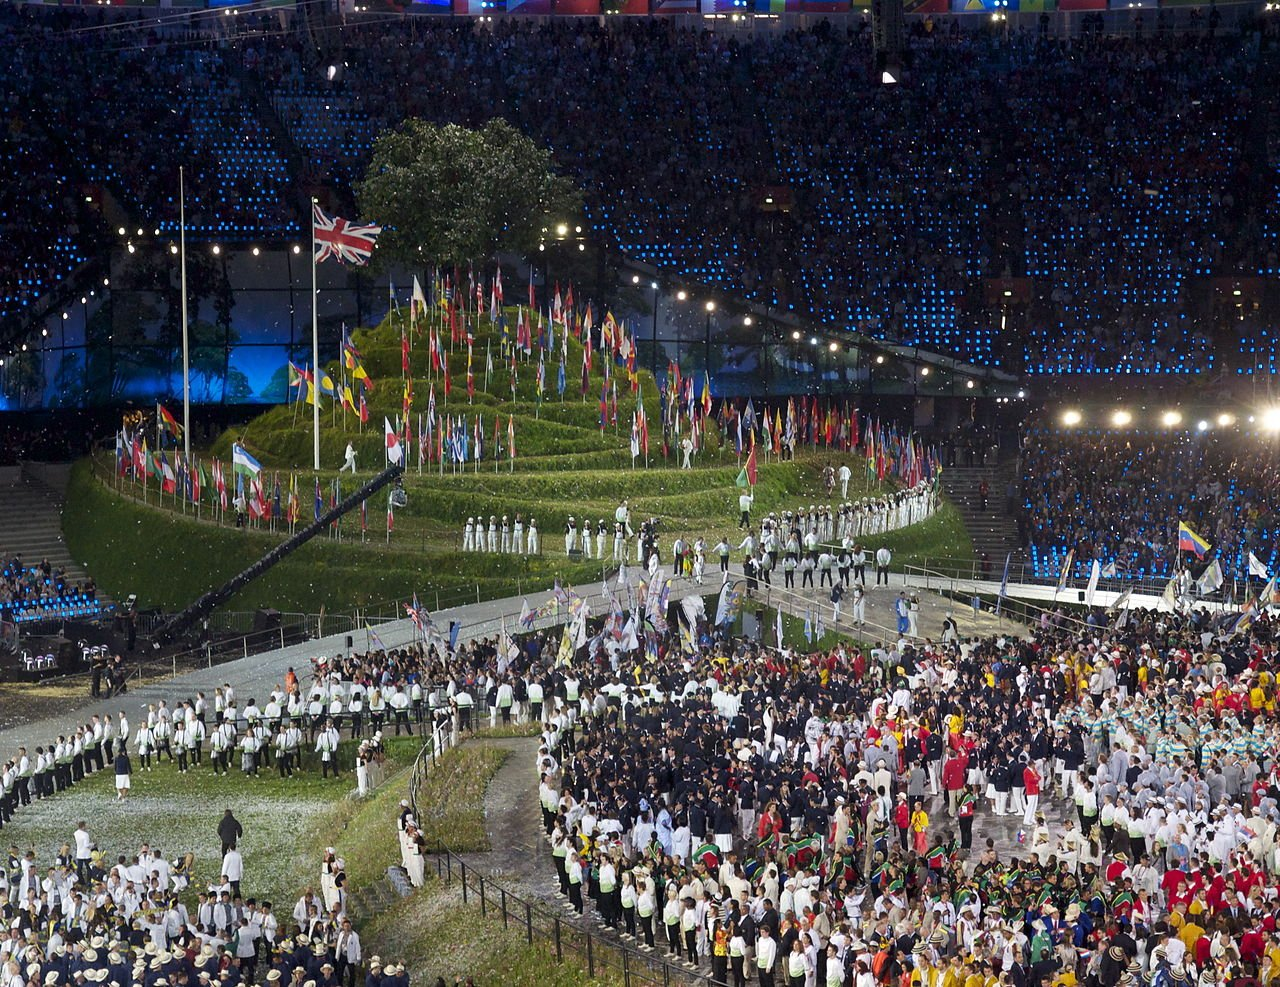 2012 Summer Olympics opening ceremony | Source: Wikimedia Commons